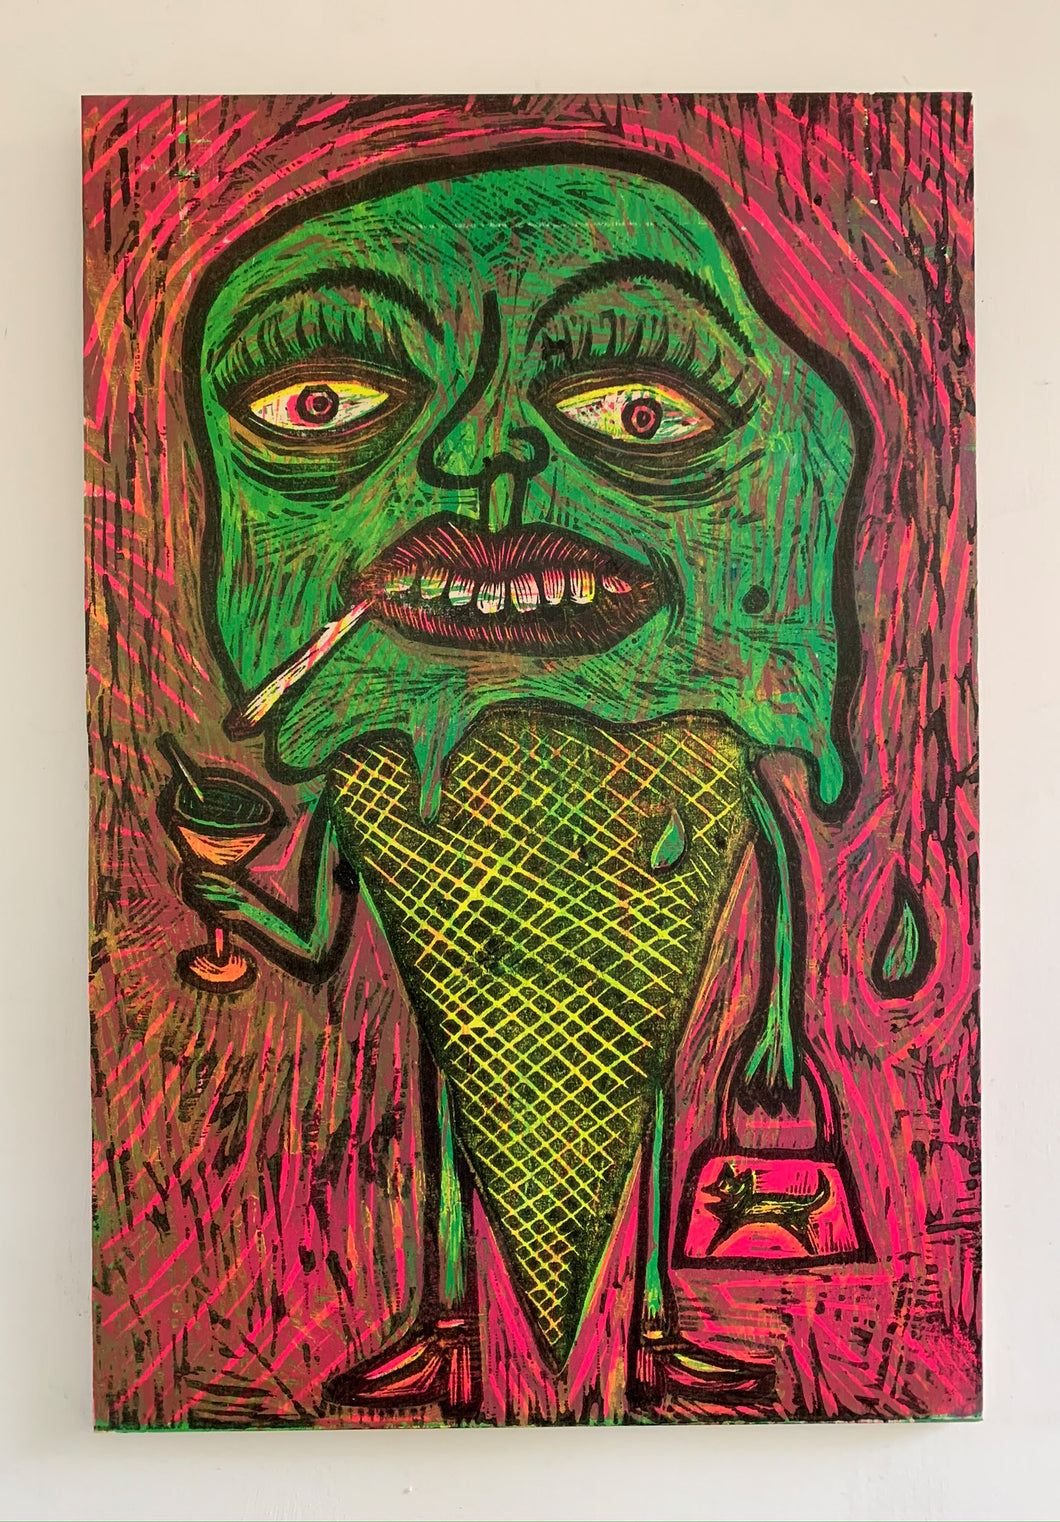 Green Melt Down Woodcut Printed on Wooden Panel